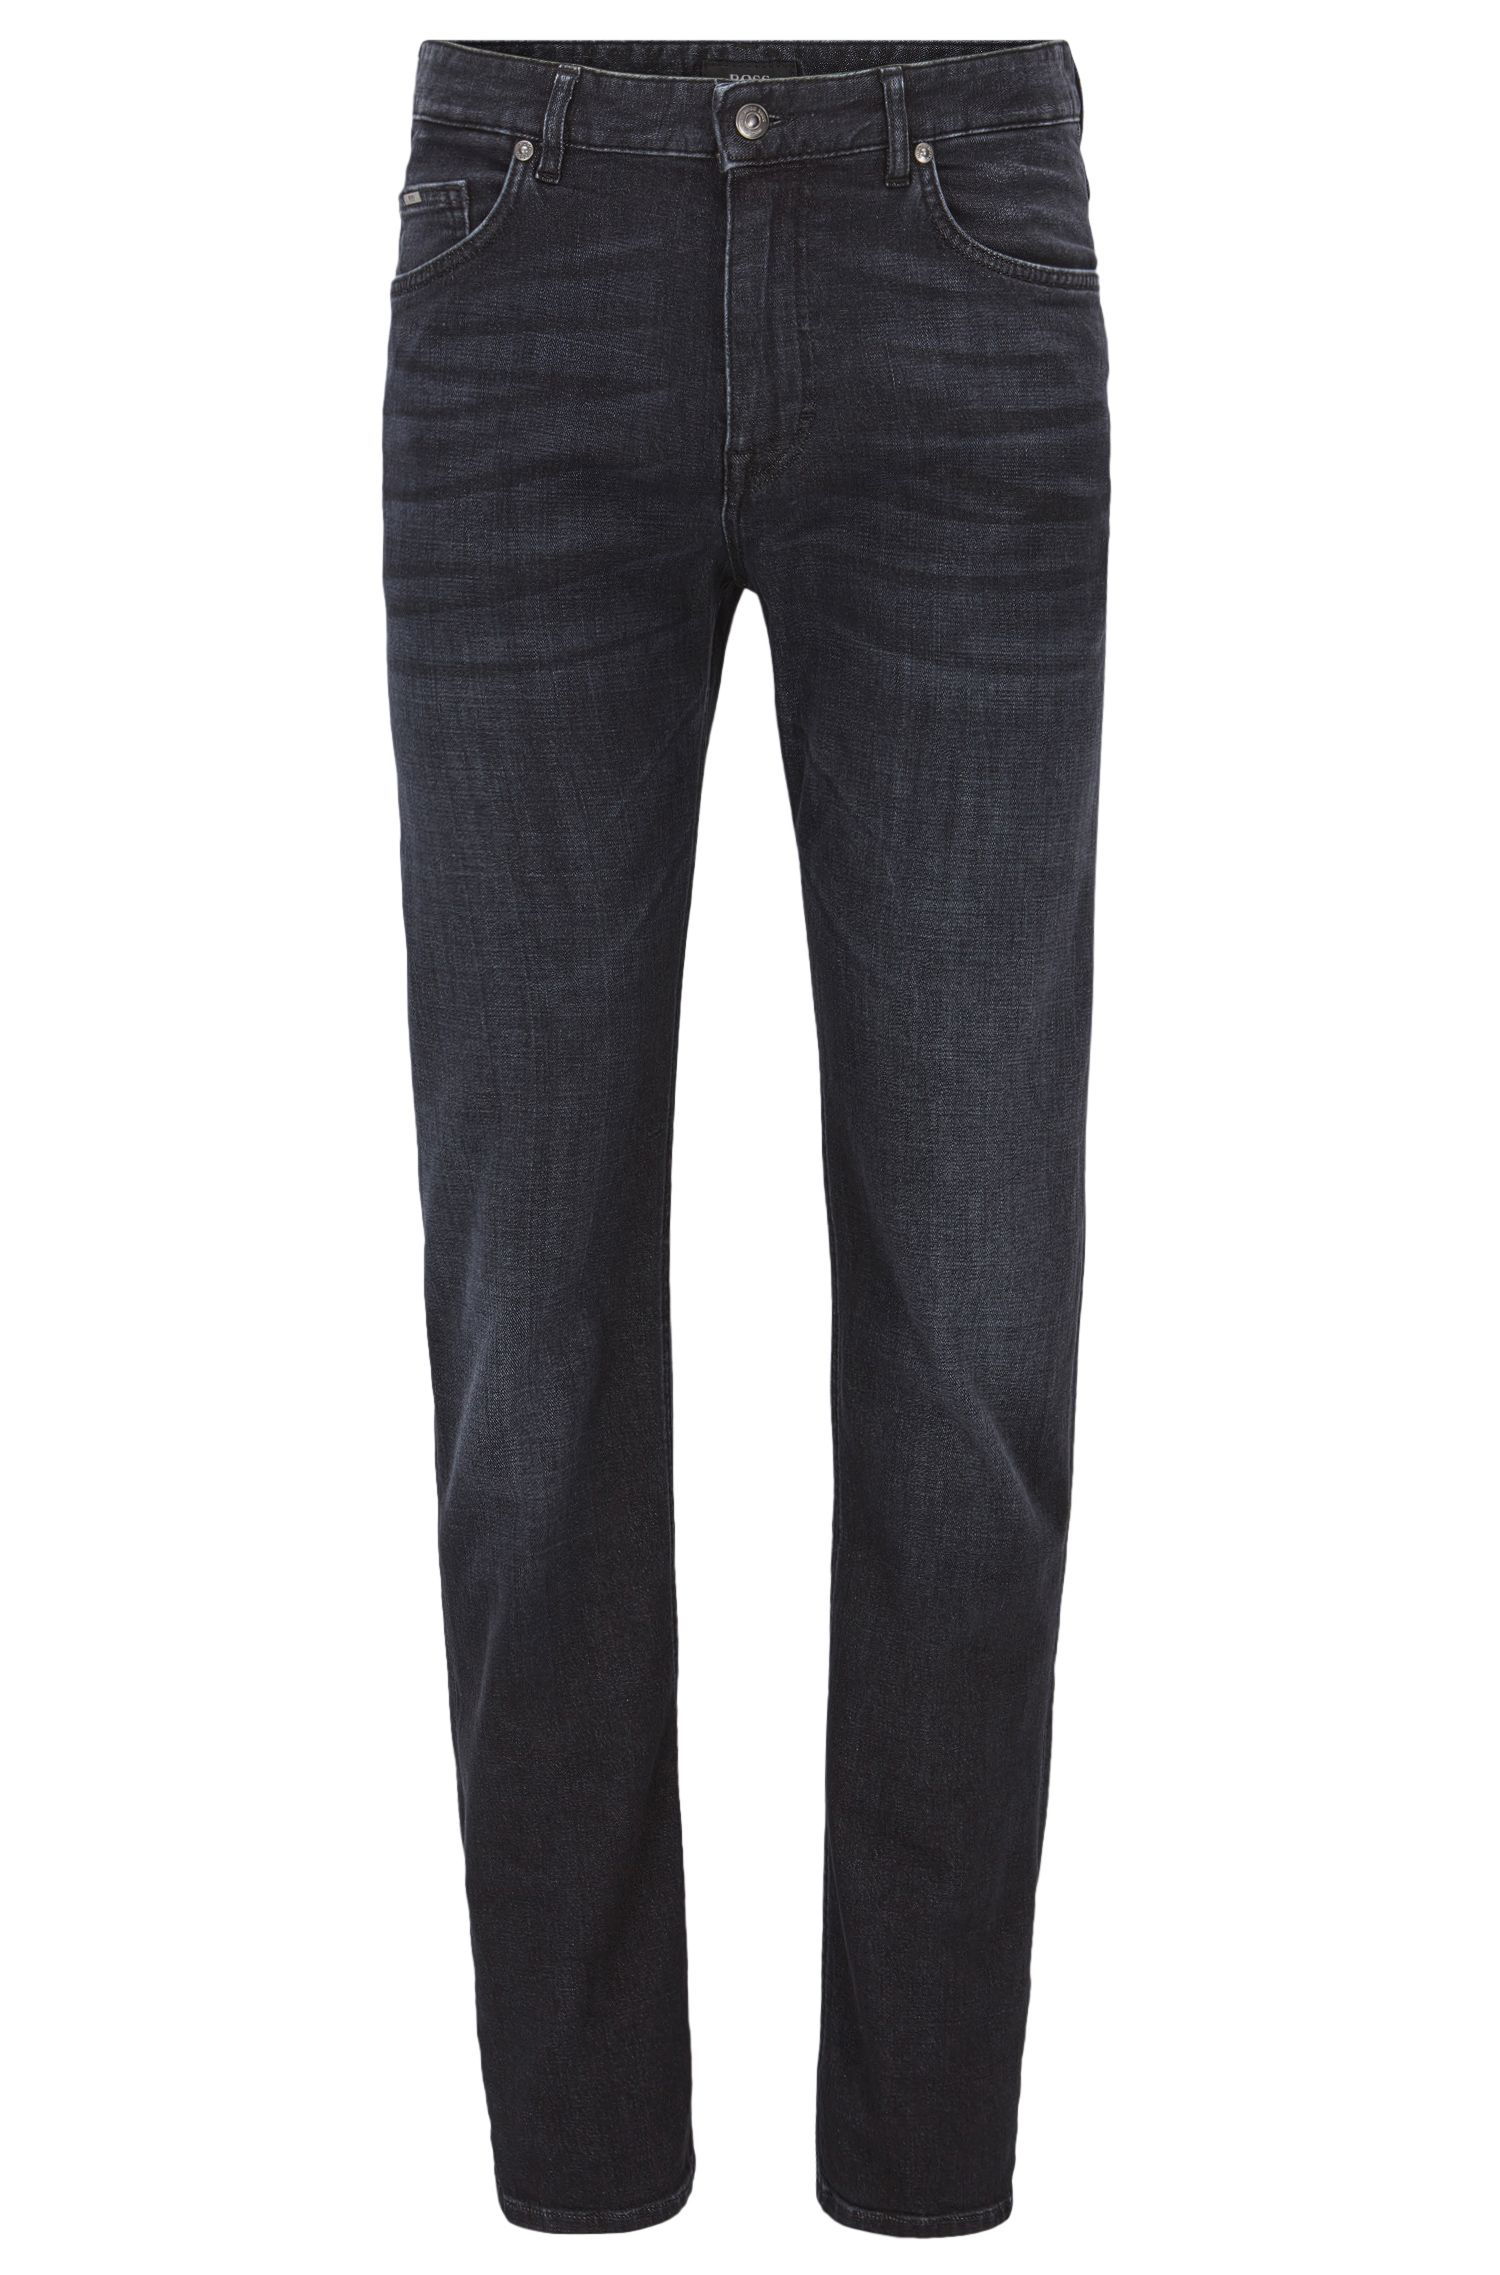 10 oz Stretch Cotton Jeans, Relaxed Fit | Albany